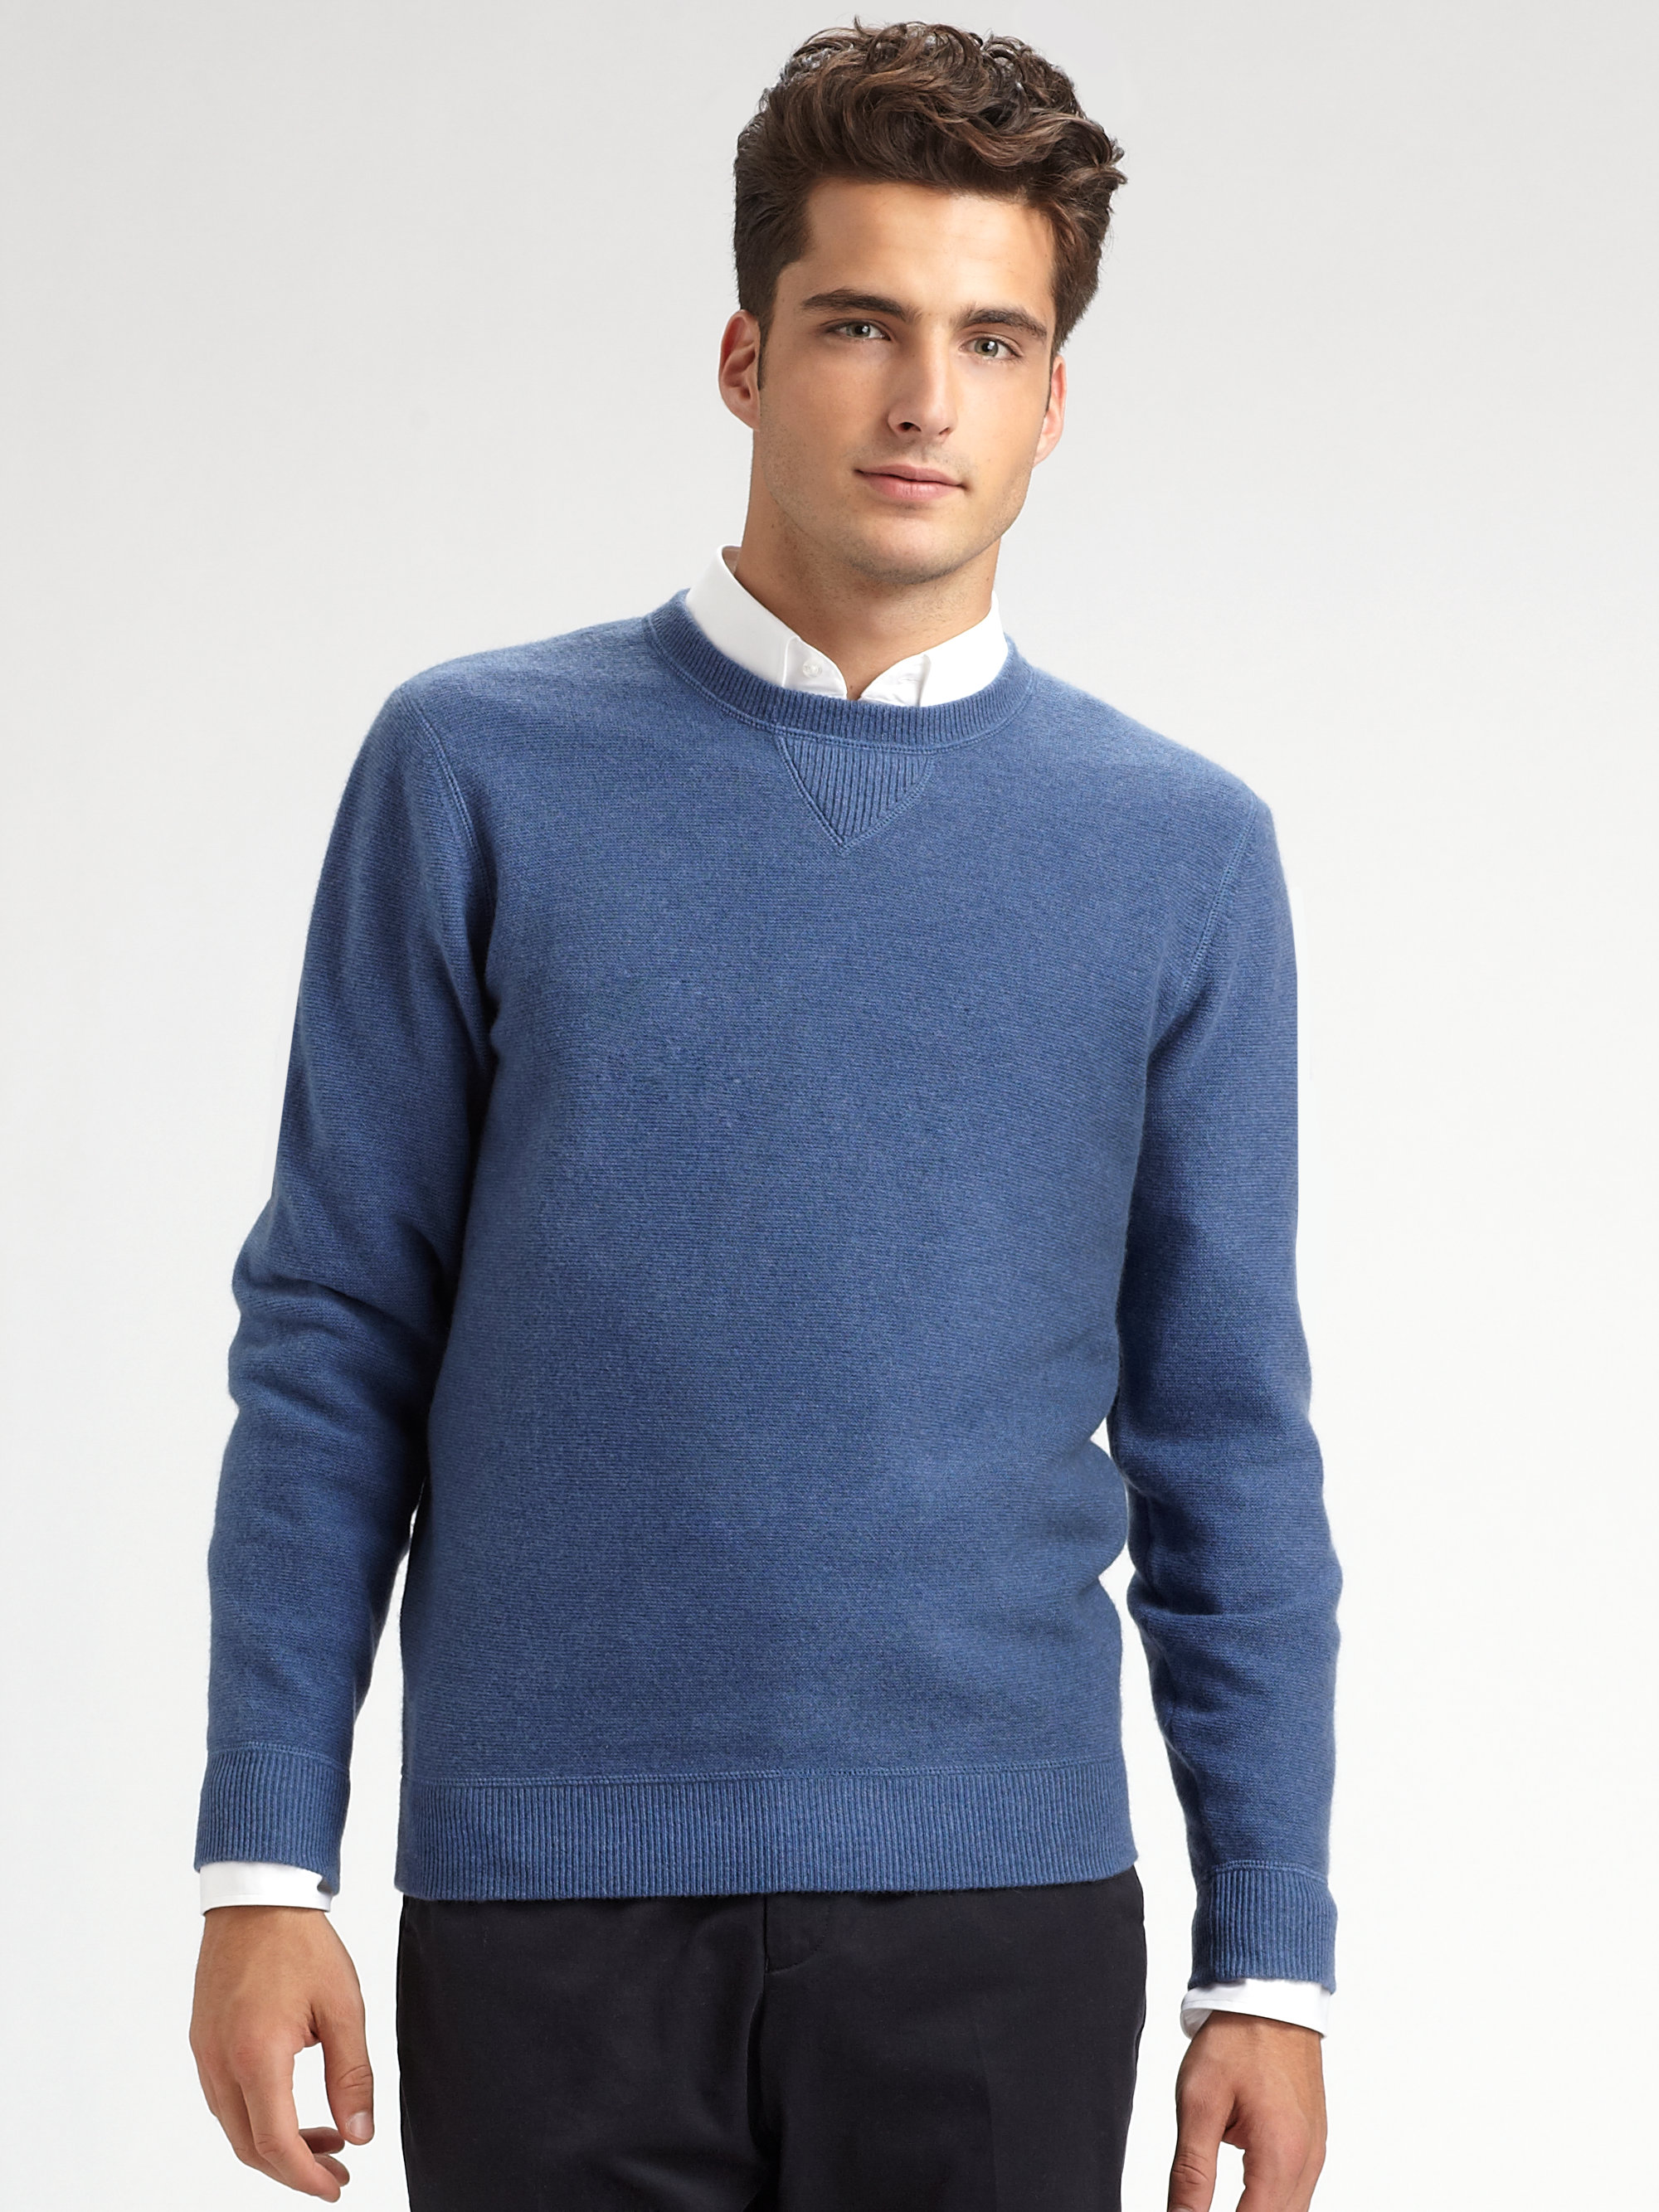 Established in , Raffi is a premier designer specializing in luxury cashmere and knitwear sweaters for both men and women.